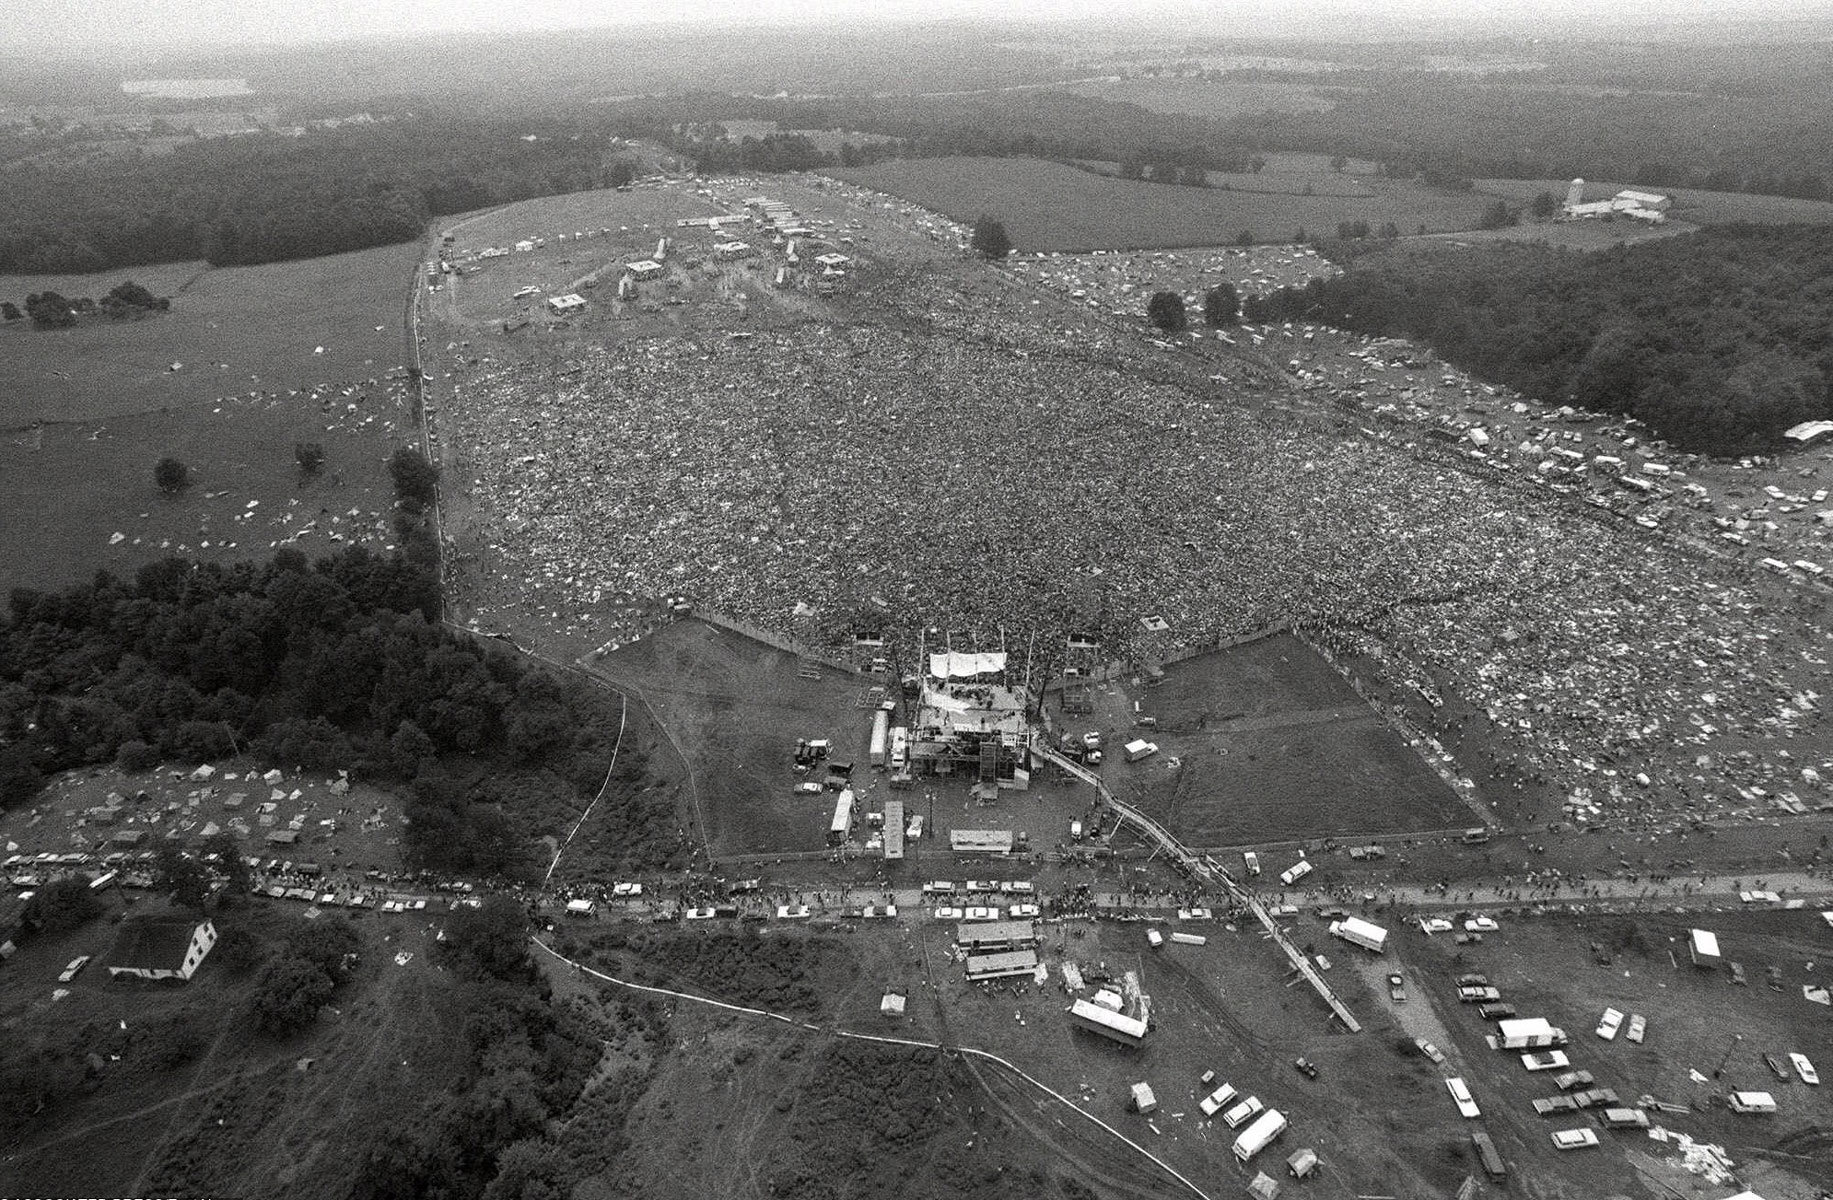 About 400,000 people attend the Woodstock Music and Arts Festival in Bethel, N.Y., August 16, 1969. Фото: AP/East News